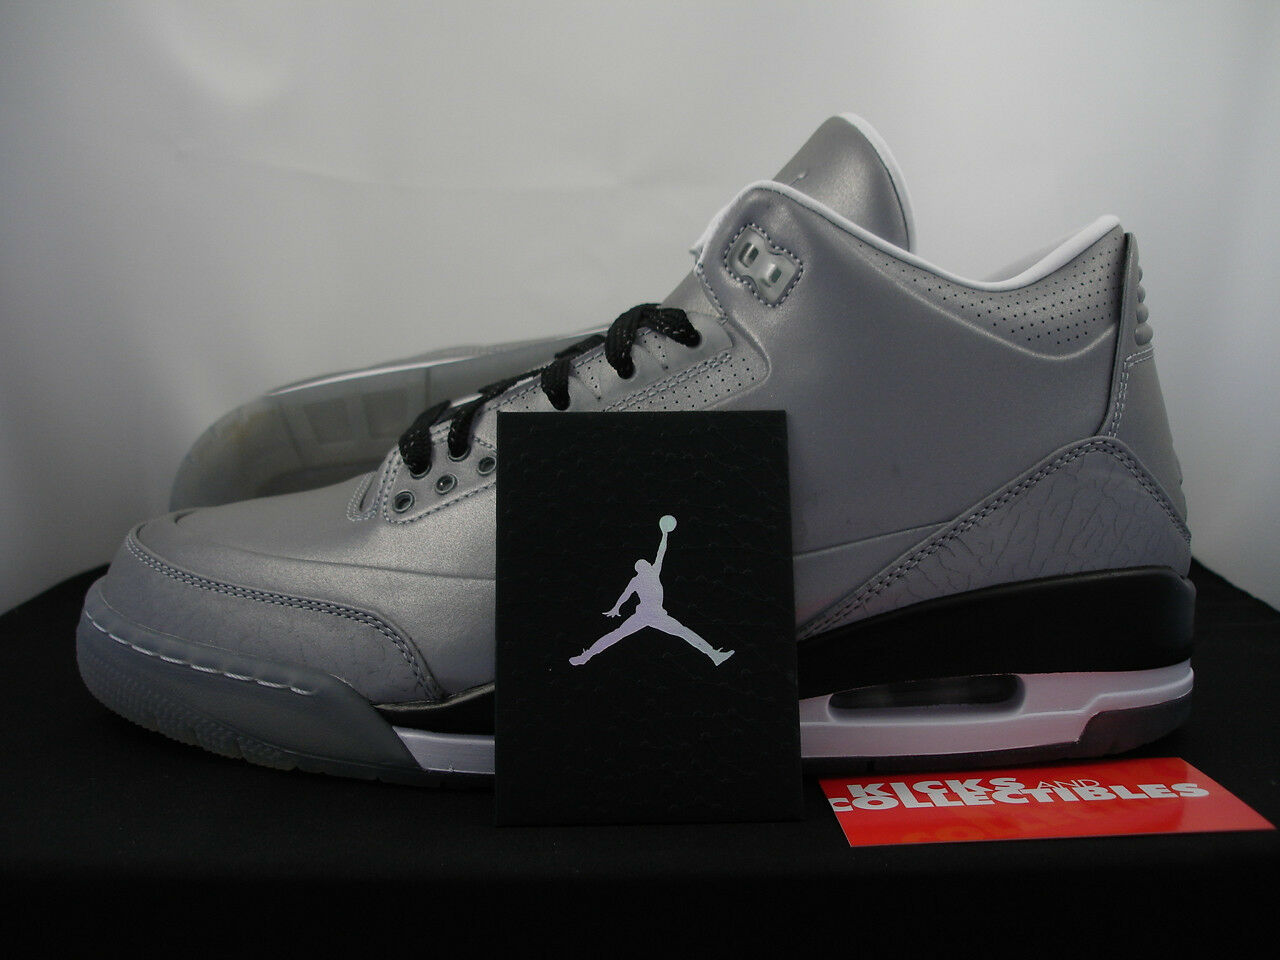 2018 Nike Air Jordan 5Lab3 Retro 3 9.5 Silver Reflective IN HAND 631603-003 The latest discount shoes for men and women